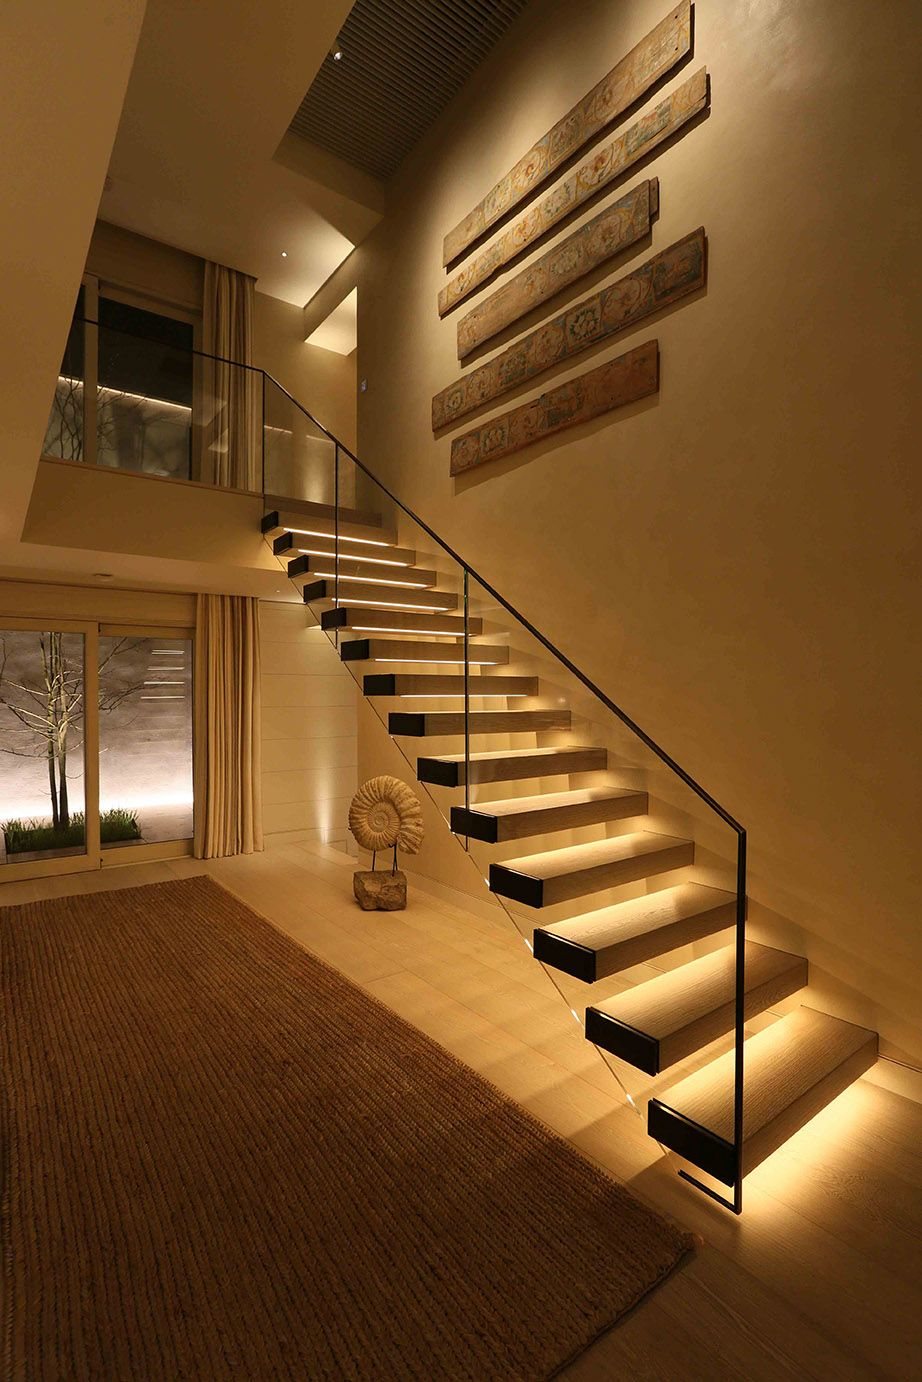 15 stairway lighting ideas spectacular with modern interiors tags basement stairway lighting ideas deck stair lighting ideas indoor stairway lighting